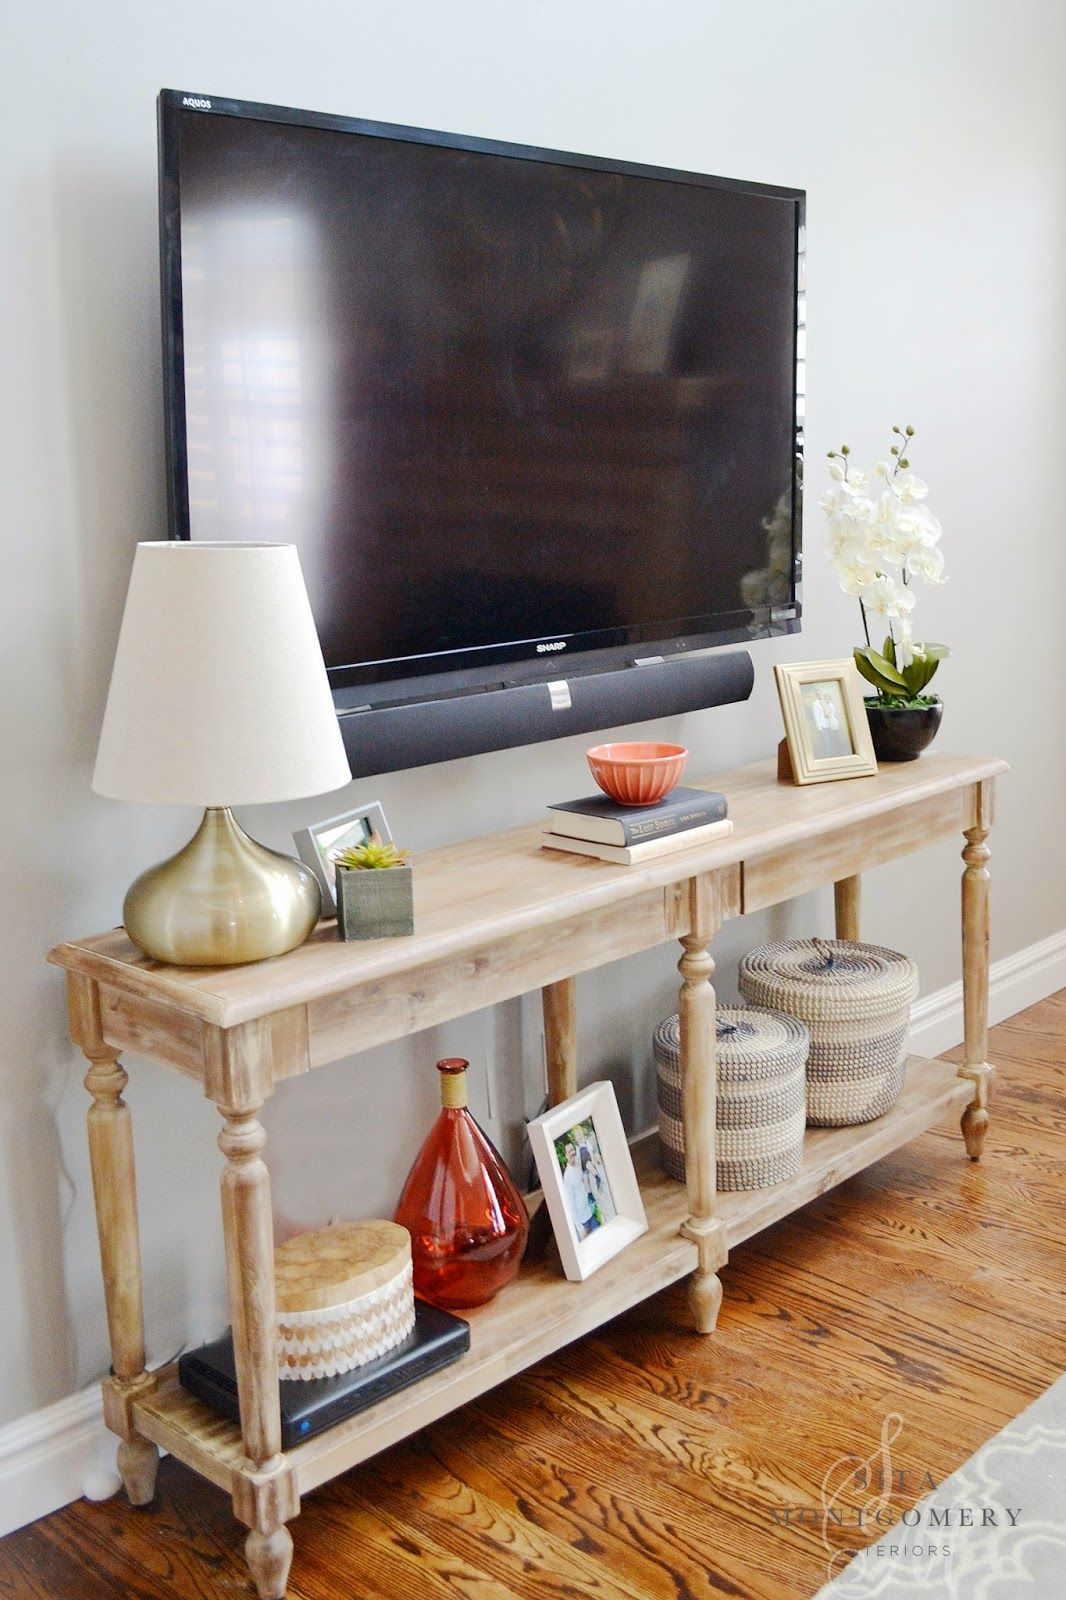 I LIKE THE USE OF THIS CONSOLE TABLE AS THE TV STAND... | My ...